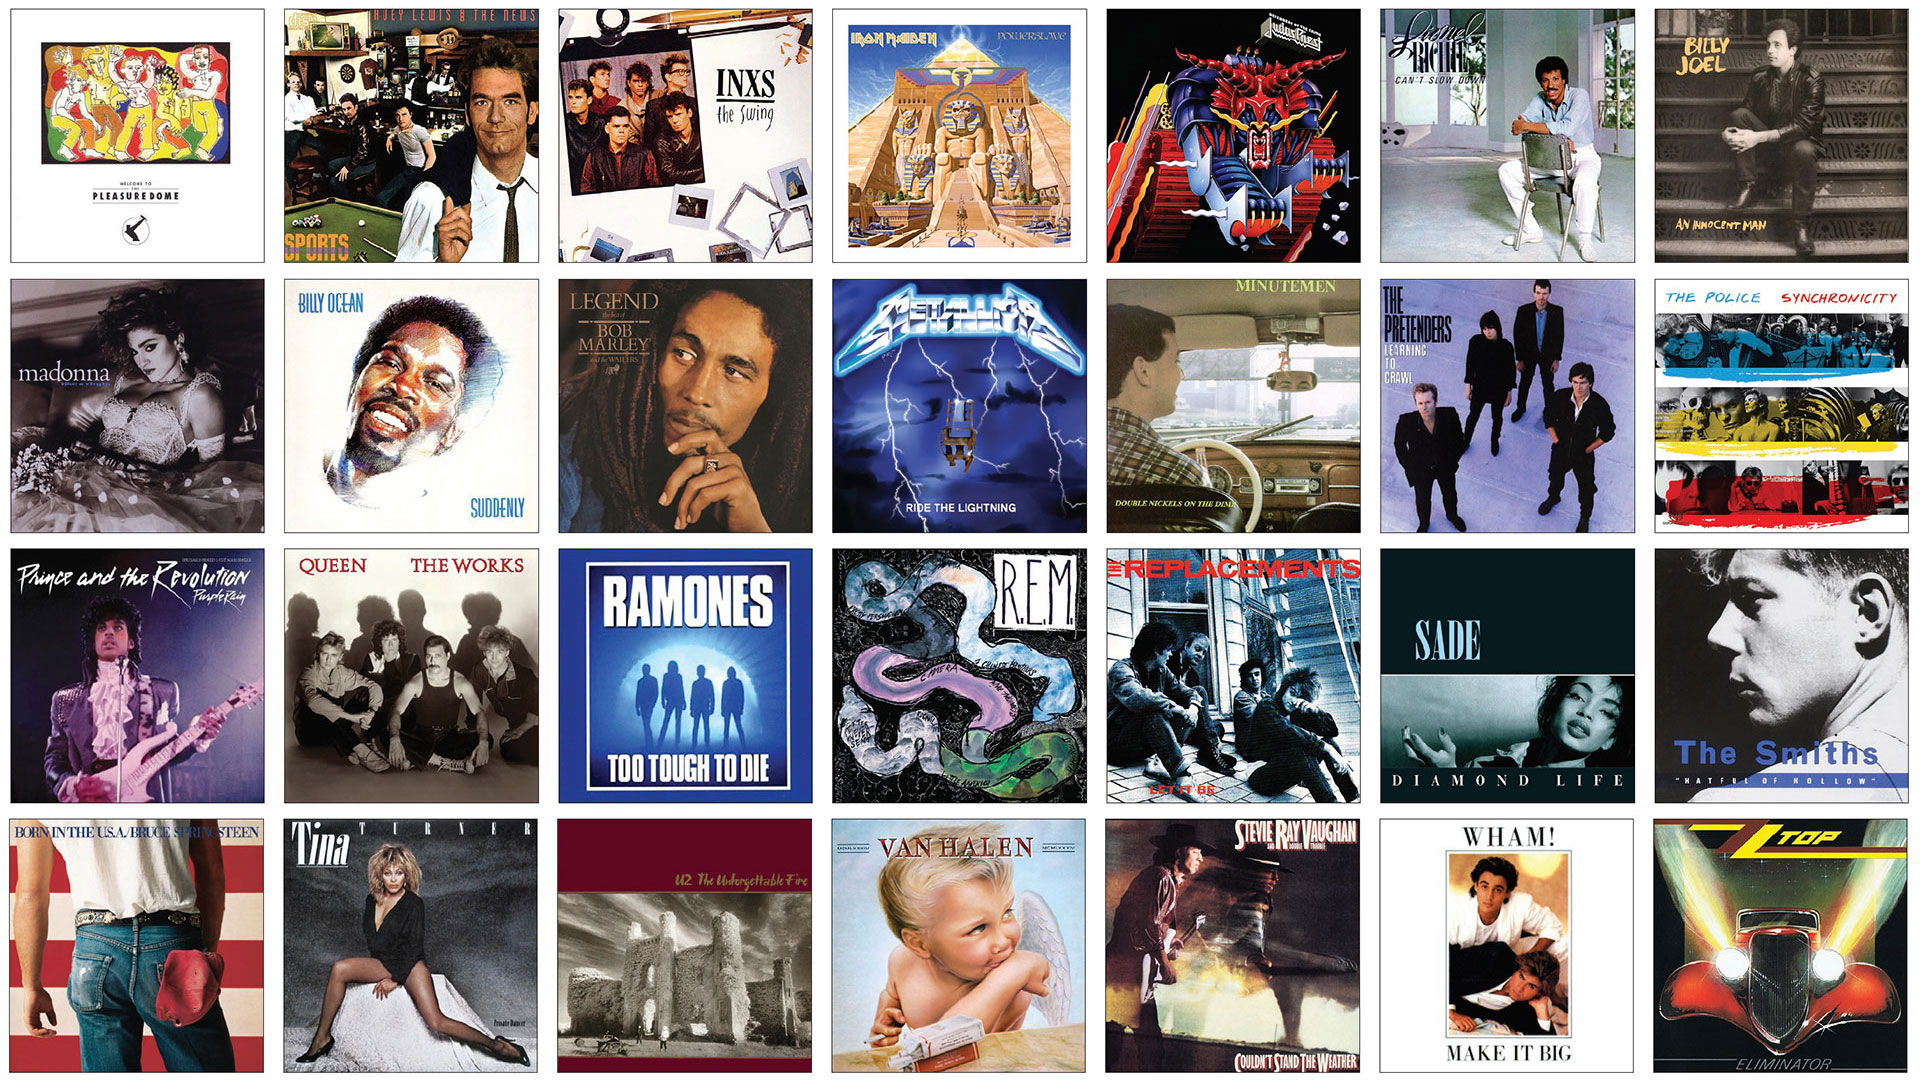 A grid of popular album covers used for back of name tags.